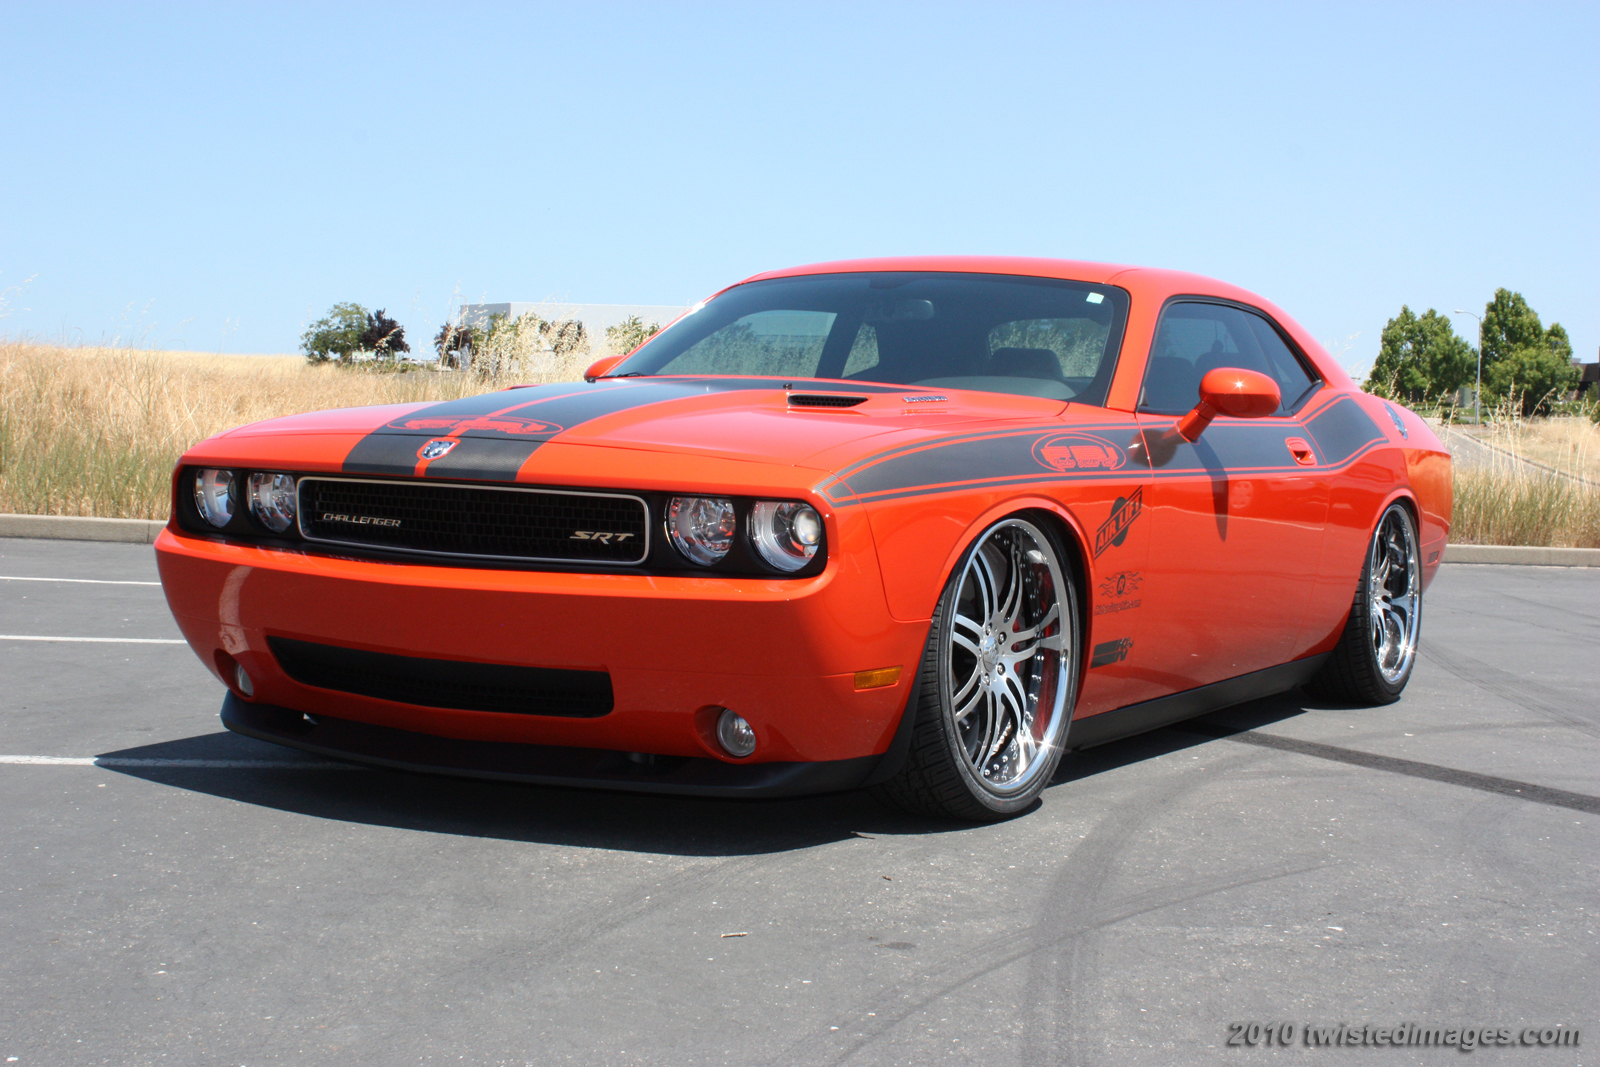 dodge 2009 challenger srt8 owners manual pdf download 783760 rh techpneu info 2010 Dodge Challenger SRT8 Supercharged 2010 dodge challenger srt8 service manual